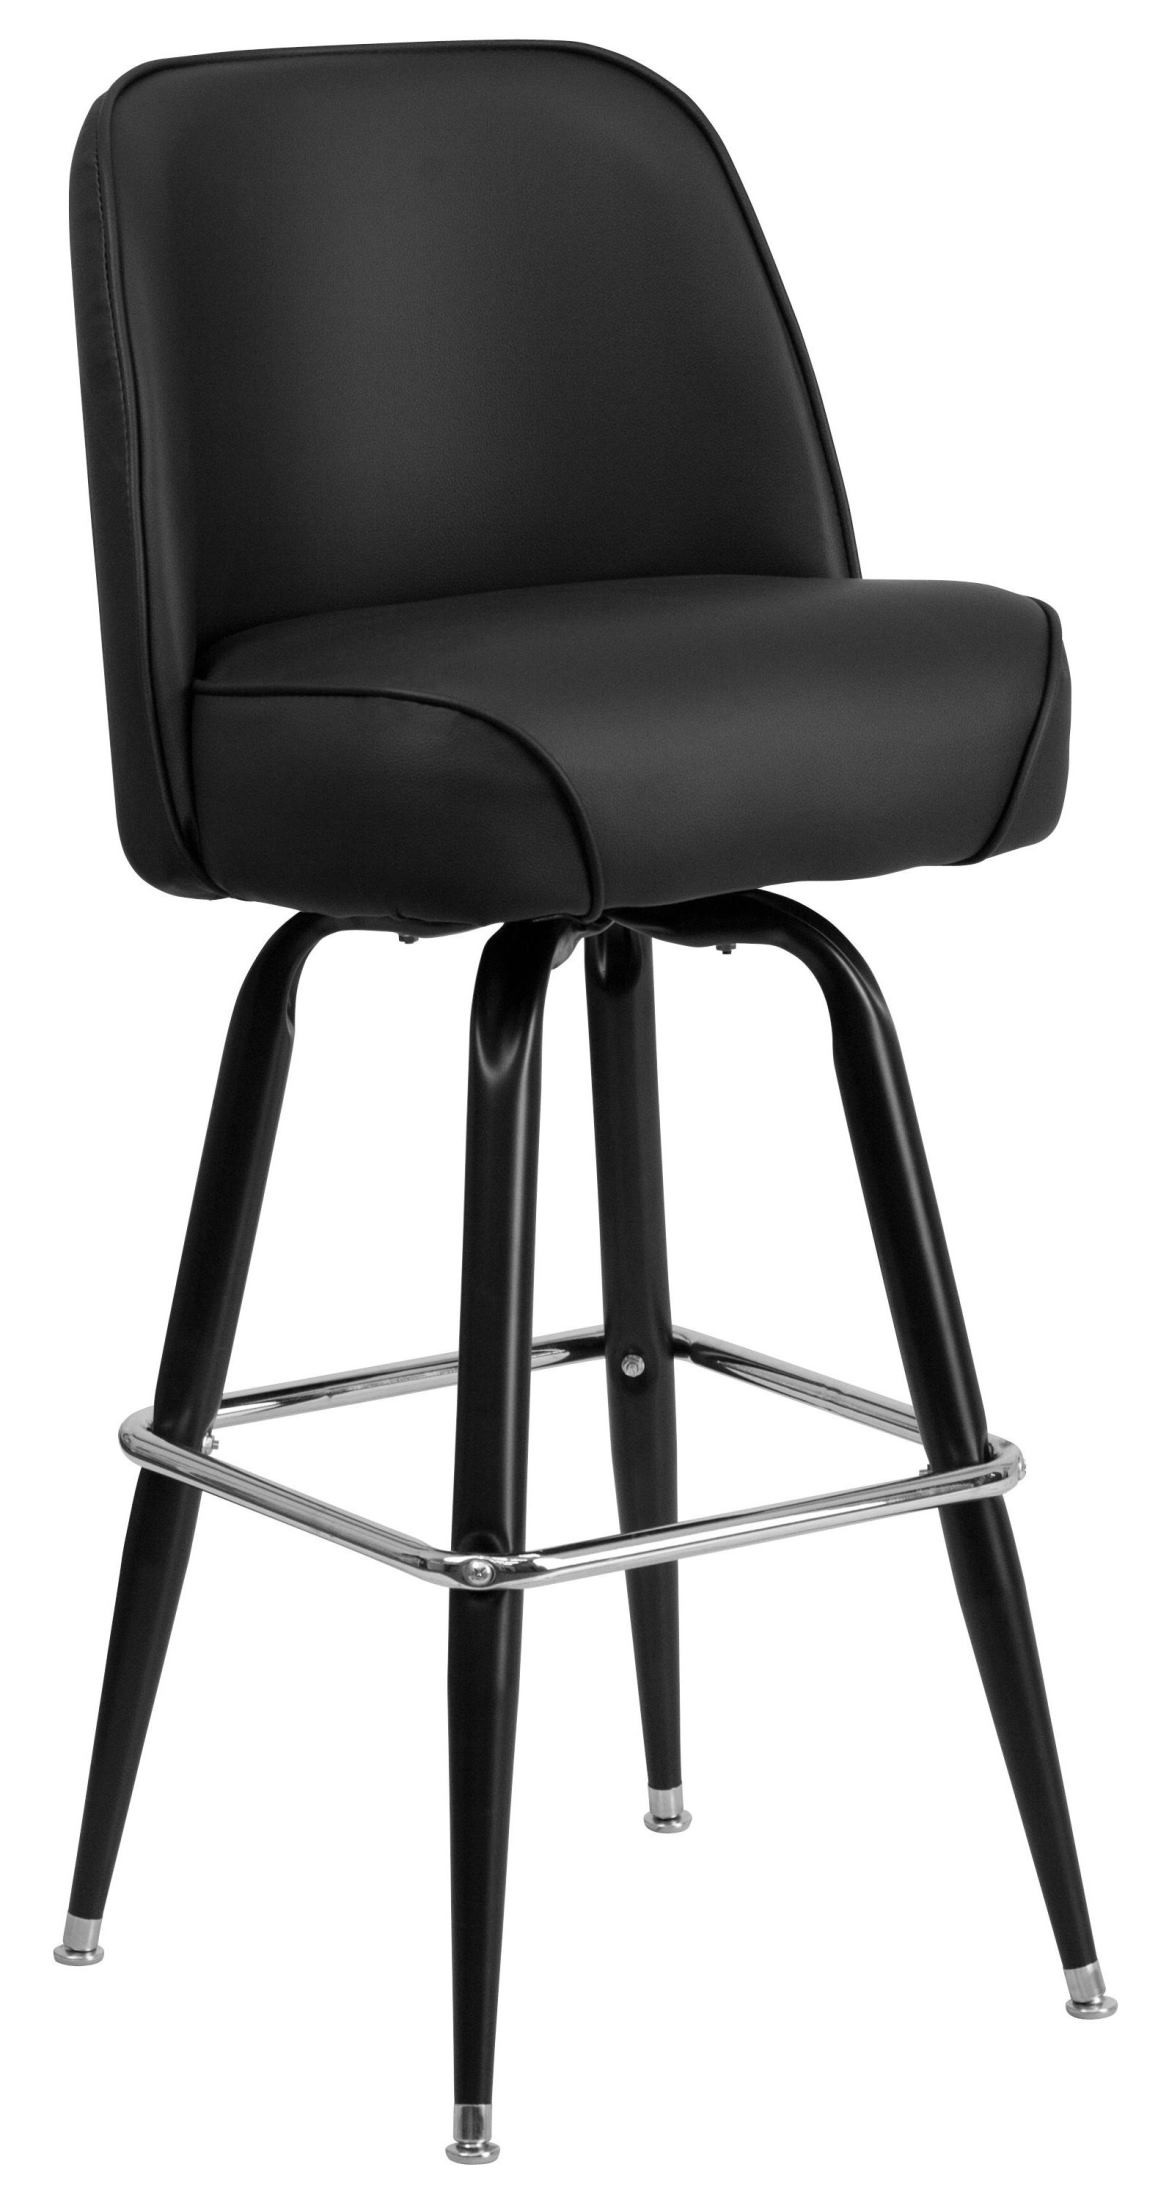 metal bucket chairs black and white striped chair sashes bar stool with swivel seat from